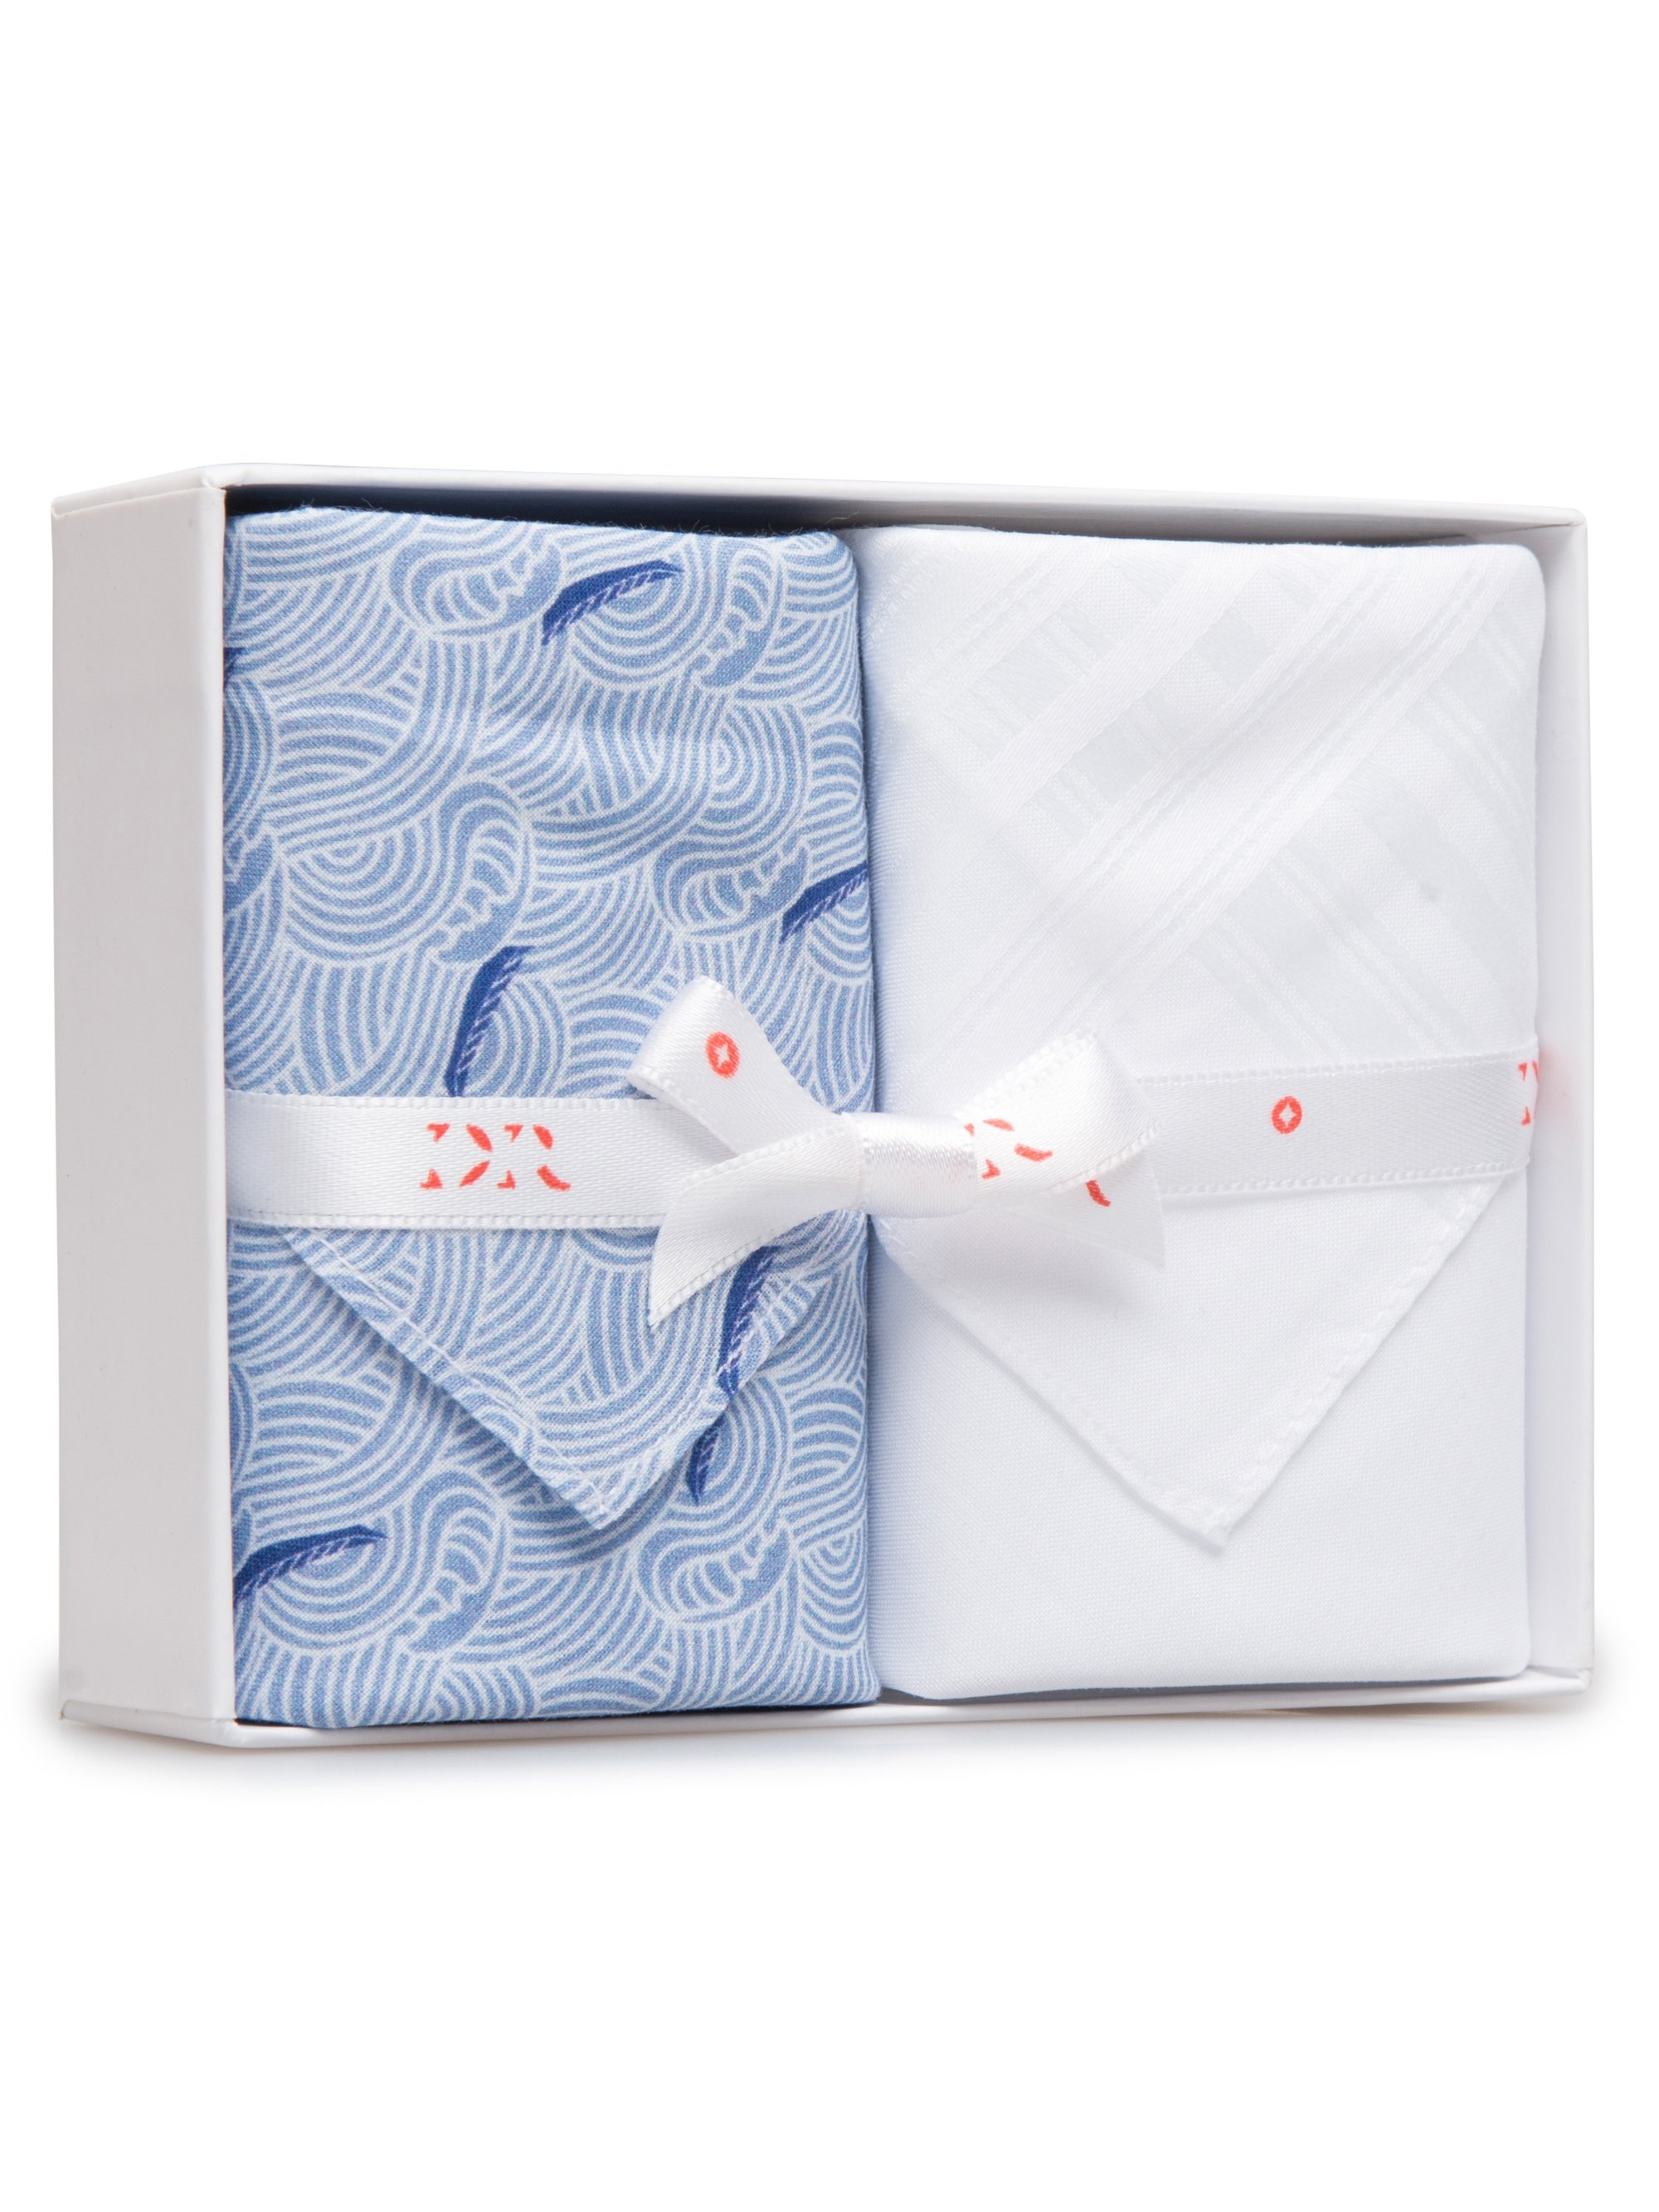 Handkerchief Set Pack 141 Ledbury 12 Blue & Plain White